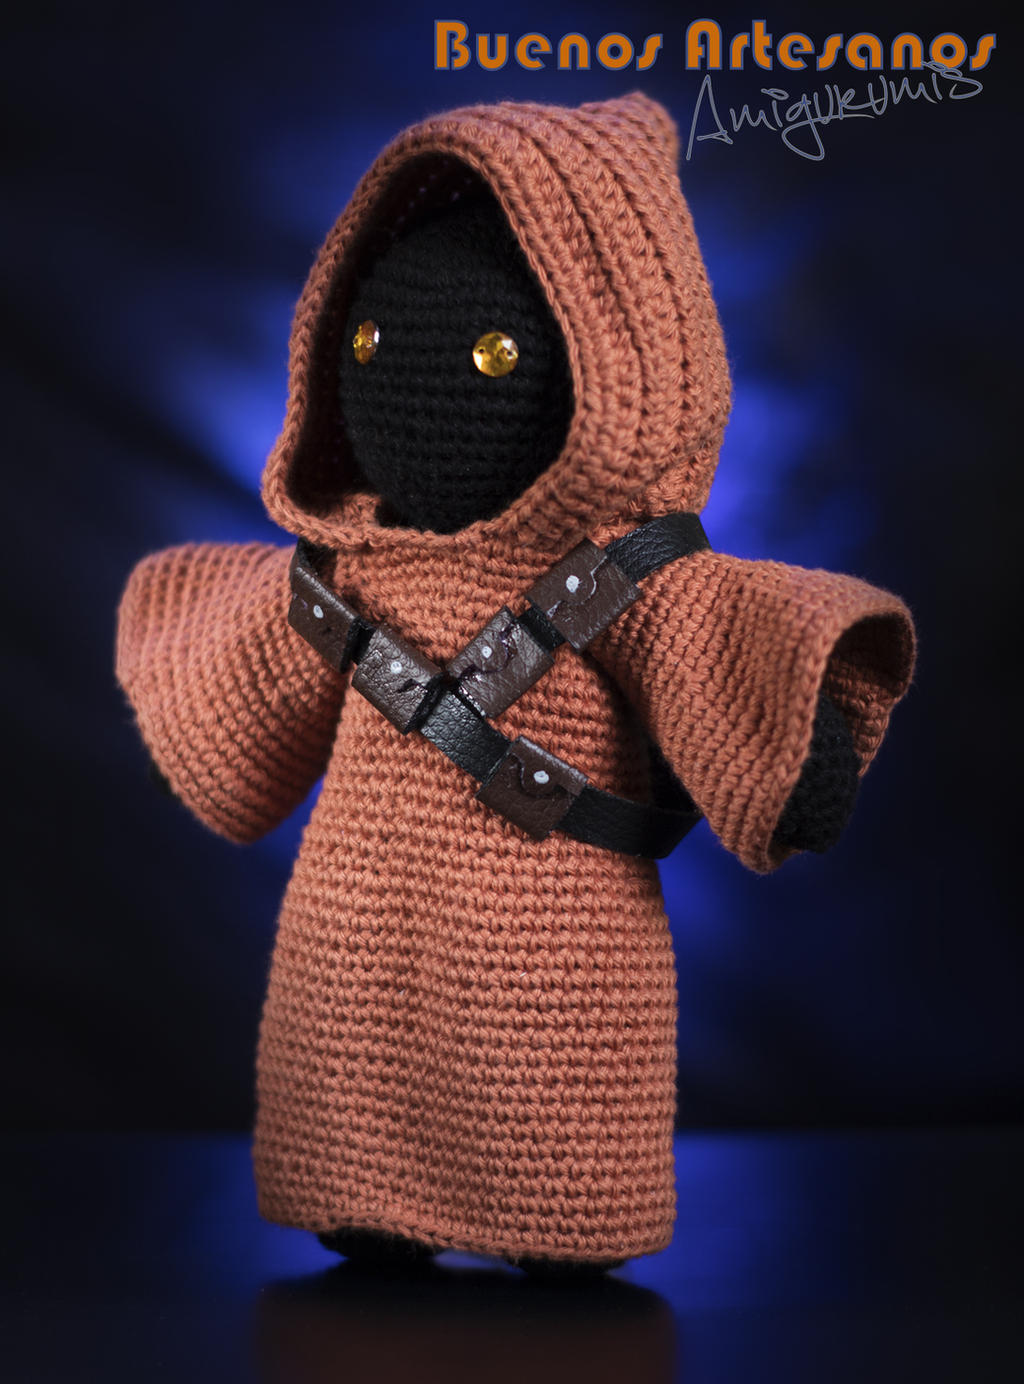 Free Amigurumi Snowman Crochet Patterns : Amigurumi Jawa (star Wars) by BuenosArtesanos on DeviantArt